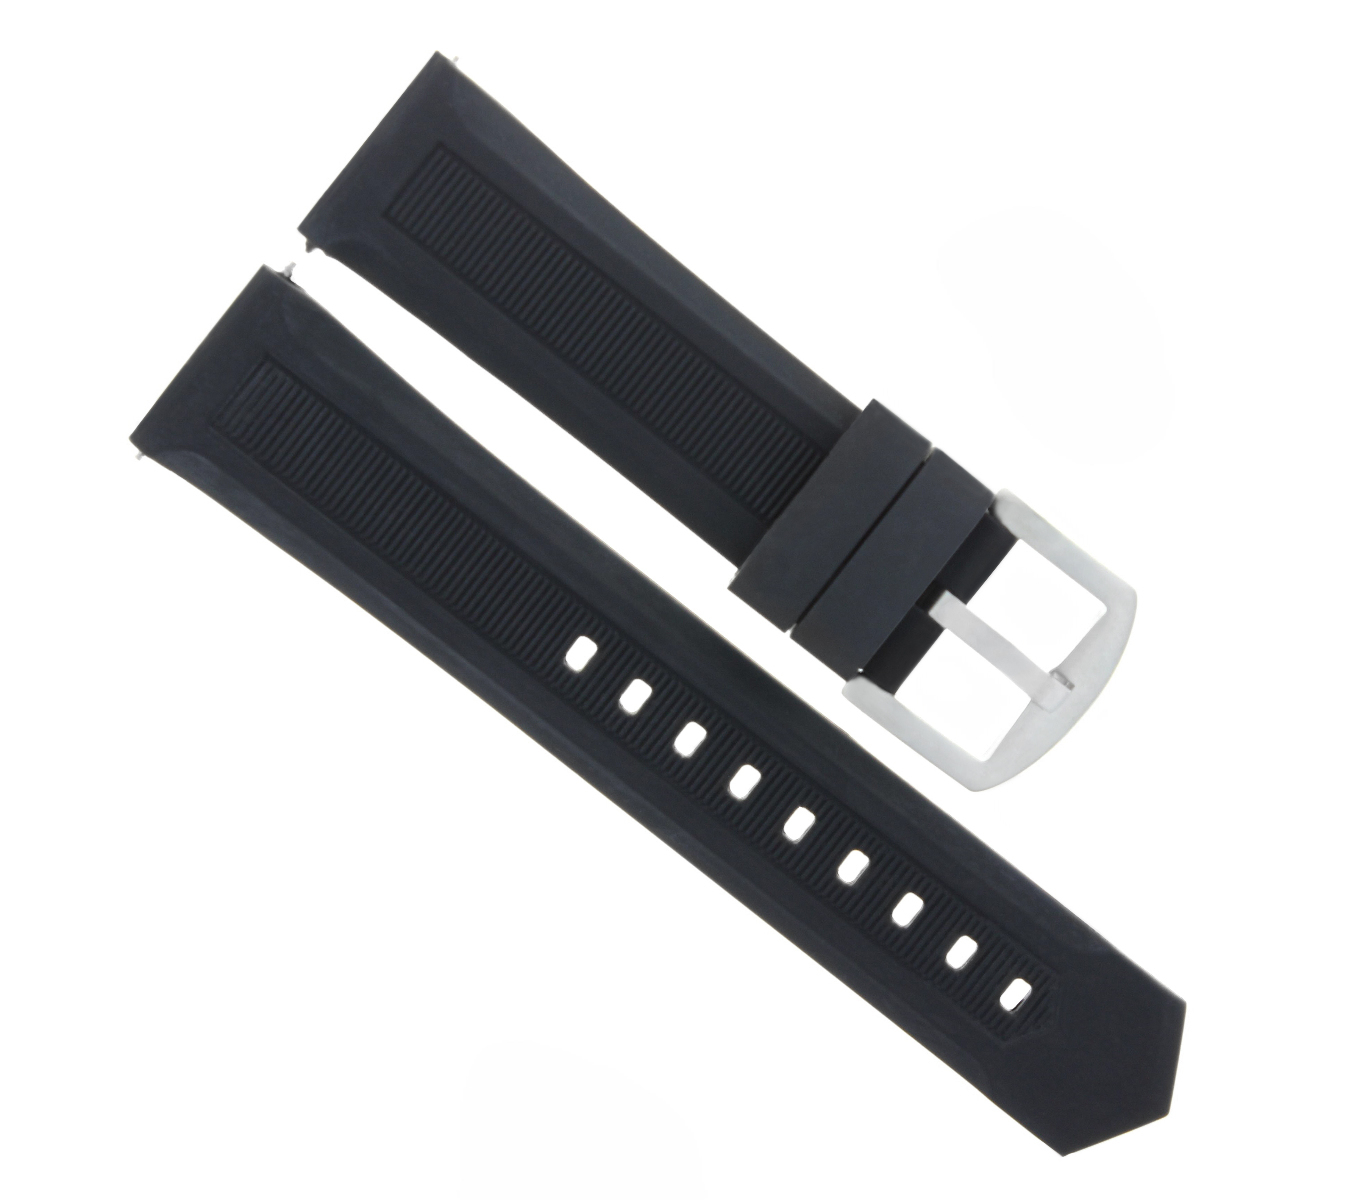 70e9ba840f65 Details about 22MM RUBBER WATCH BAND STRAP FOR TAG HEUER FORMULA F1  AQUARACER BLACK